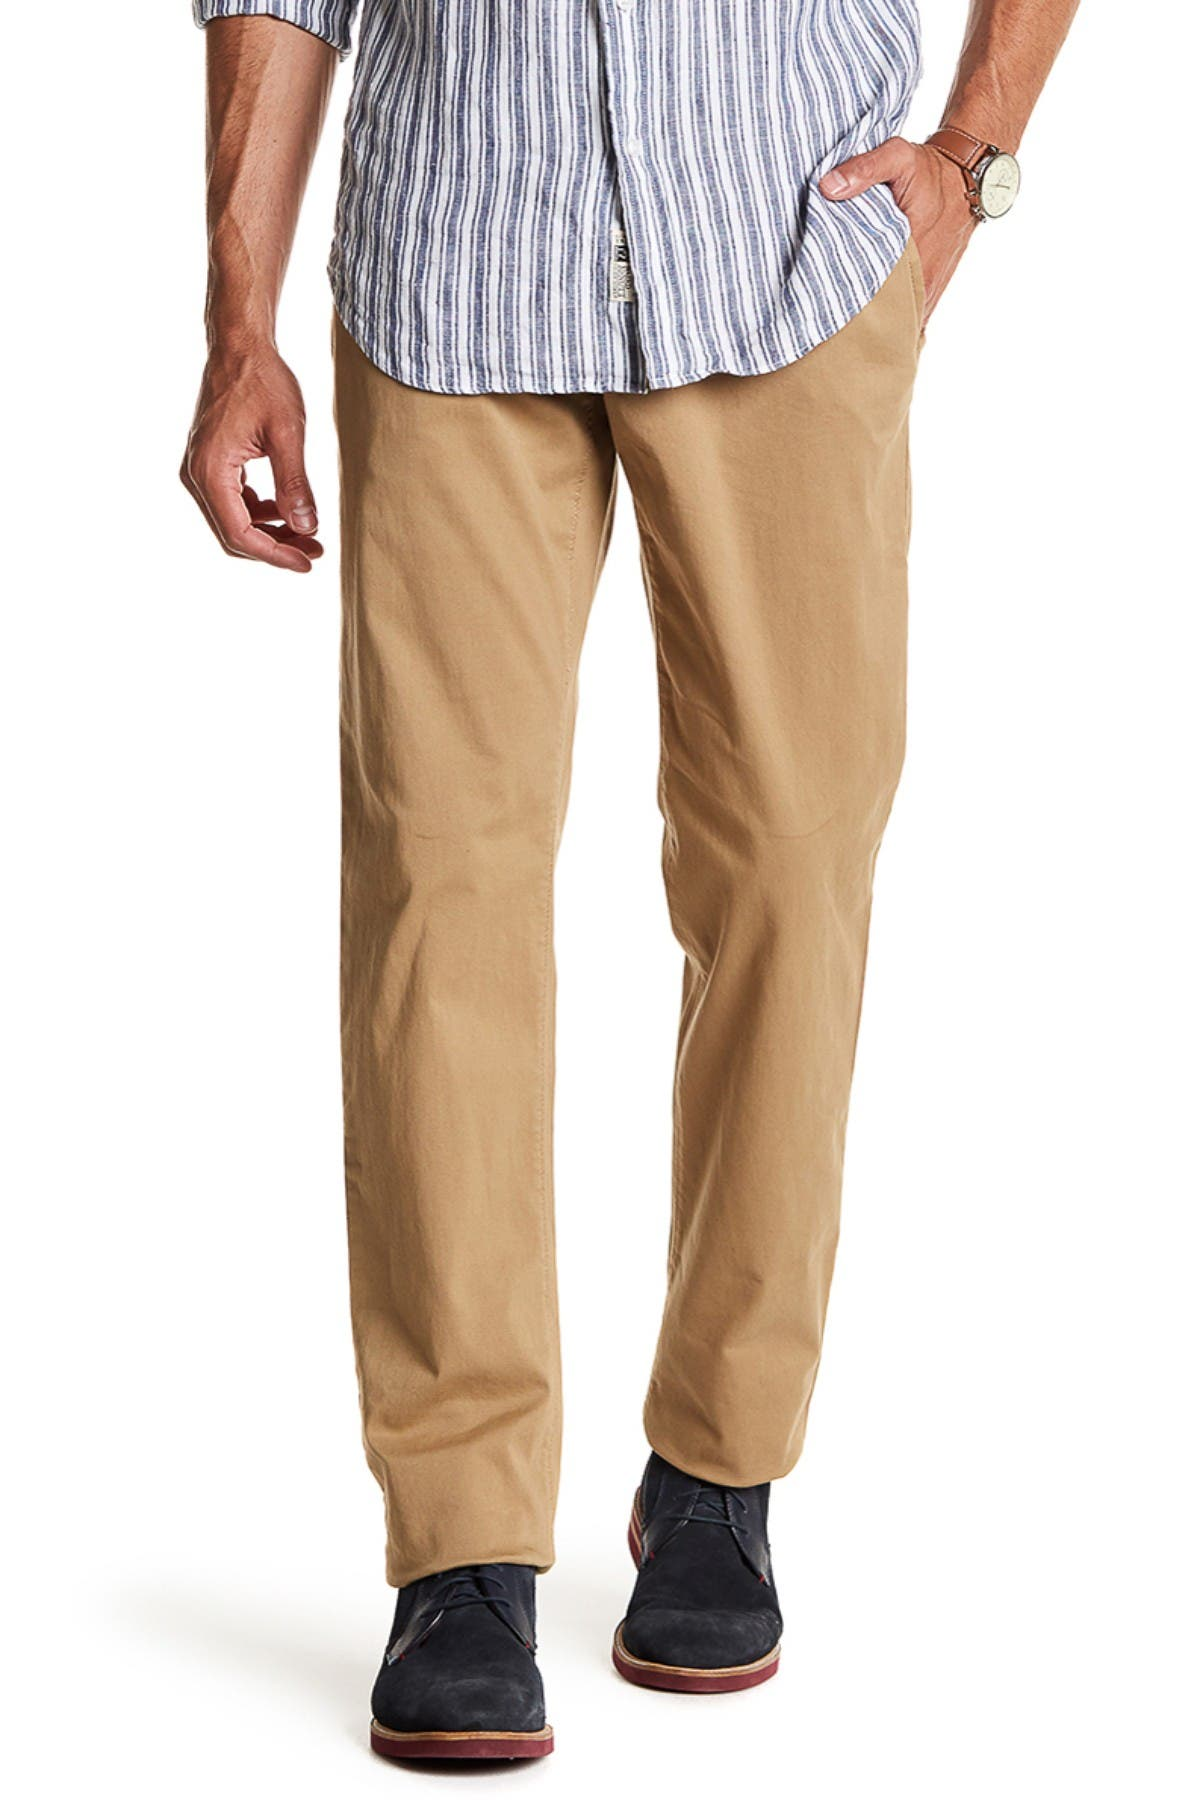 """Image of 14th & Union The Wallin Stretch Twill Chino Pants - 30-34"""" Inseam"""